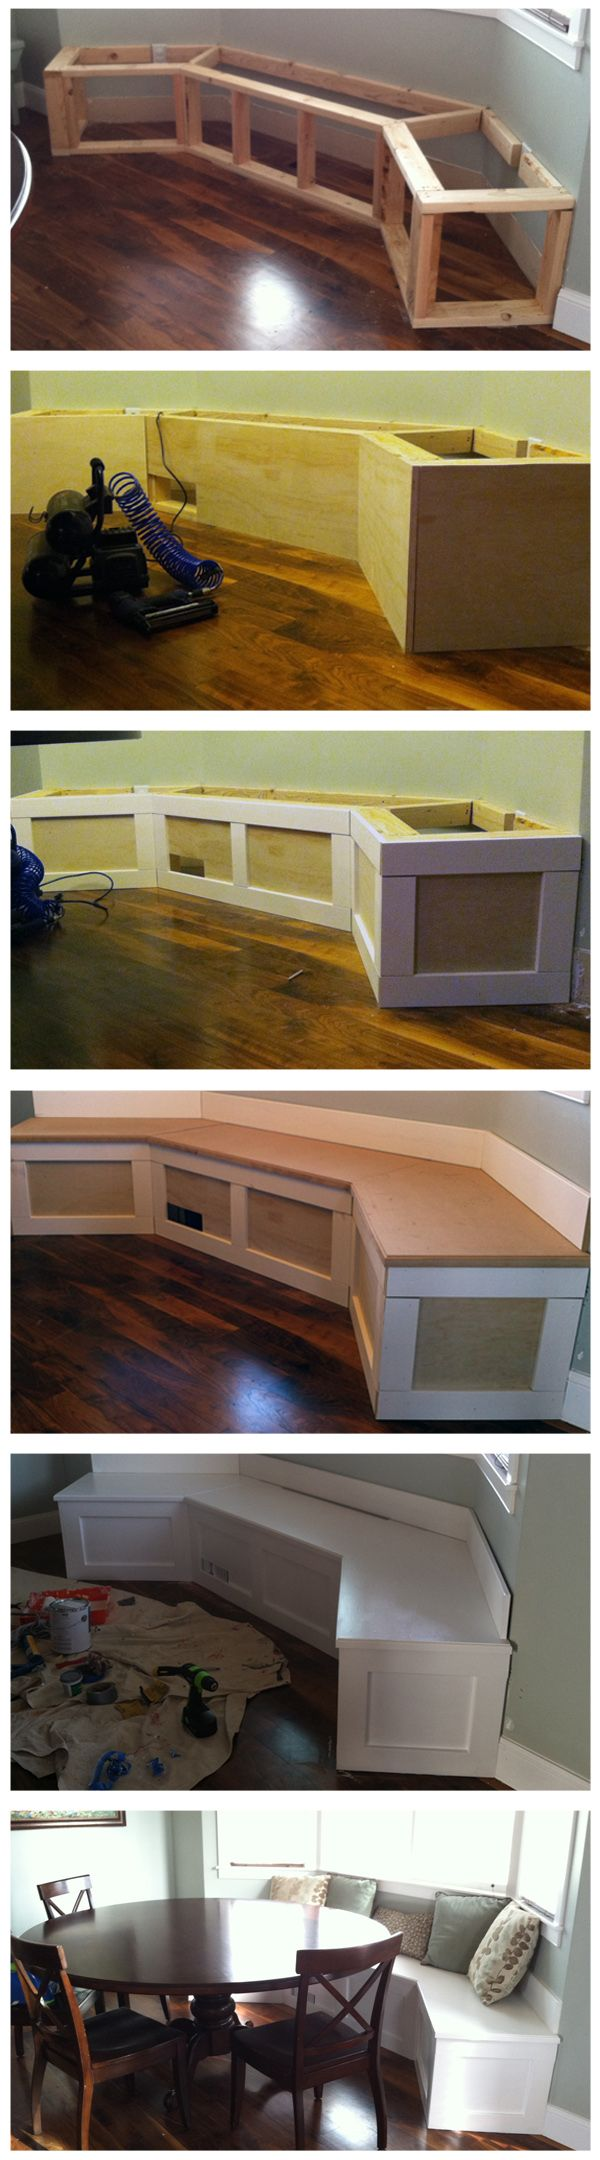 DIY Built-in Banquette... I...I want this pretty please? this totally just popped into my imaginary dream house LOL